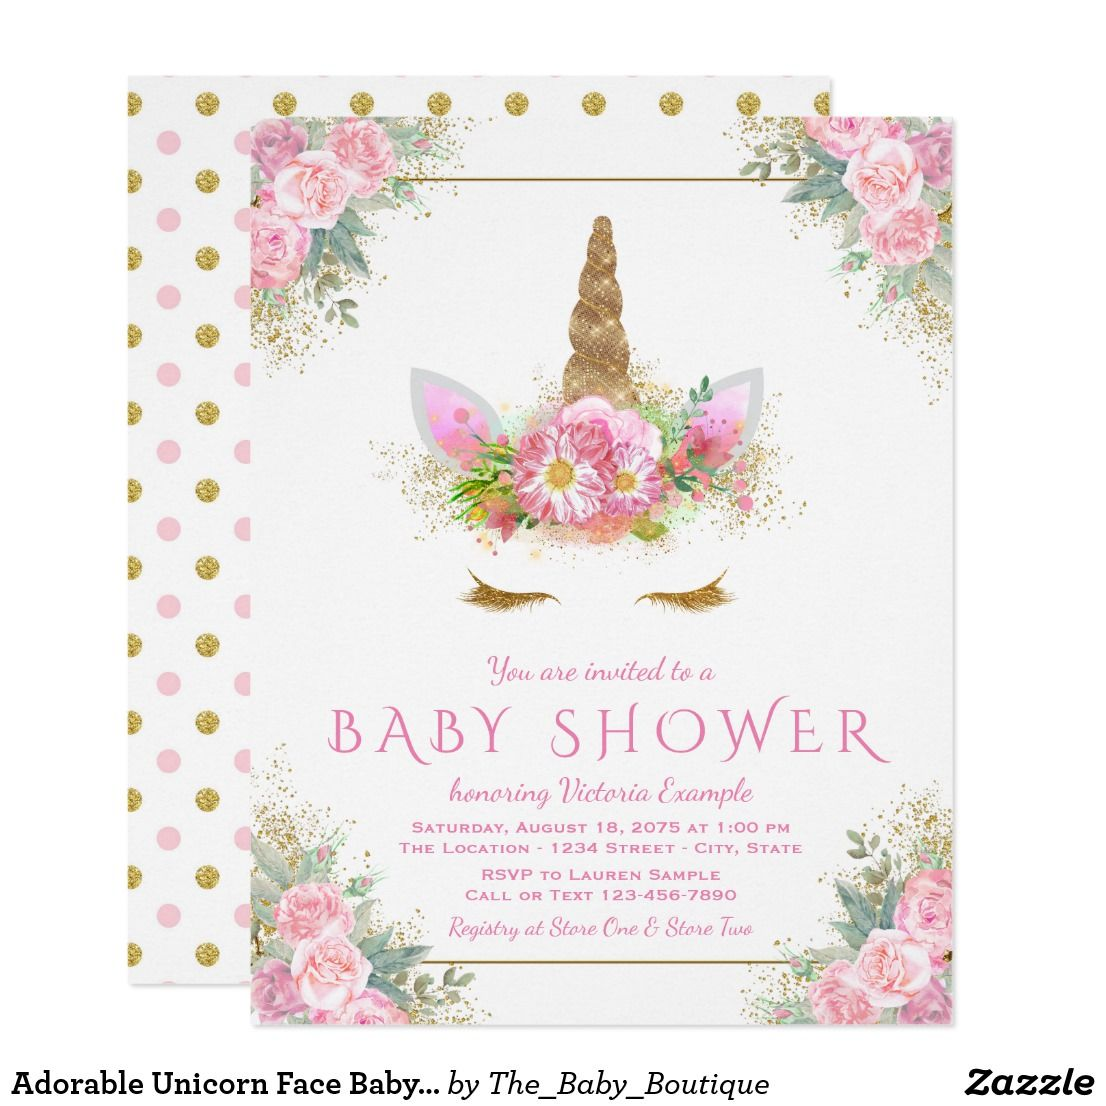 Adorable Unicorn Face Baby Shower